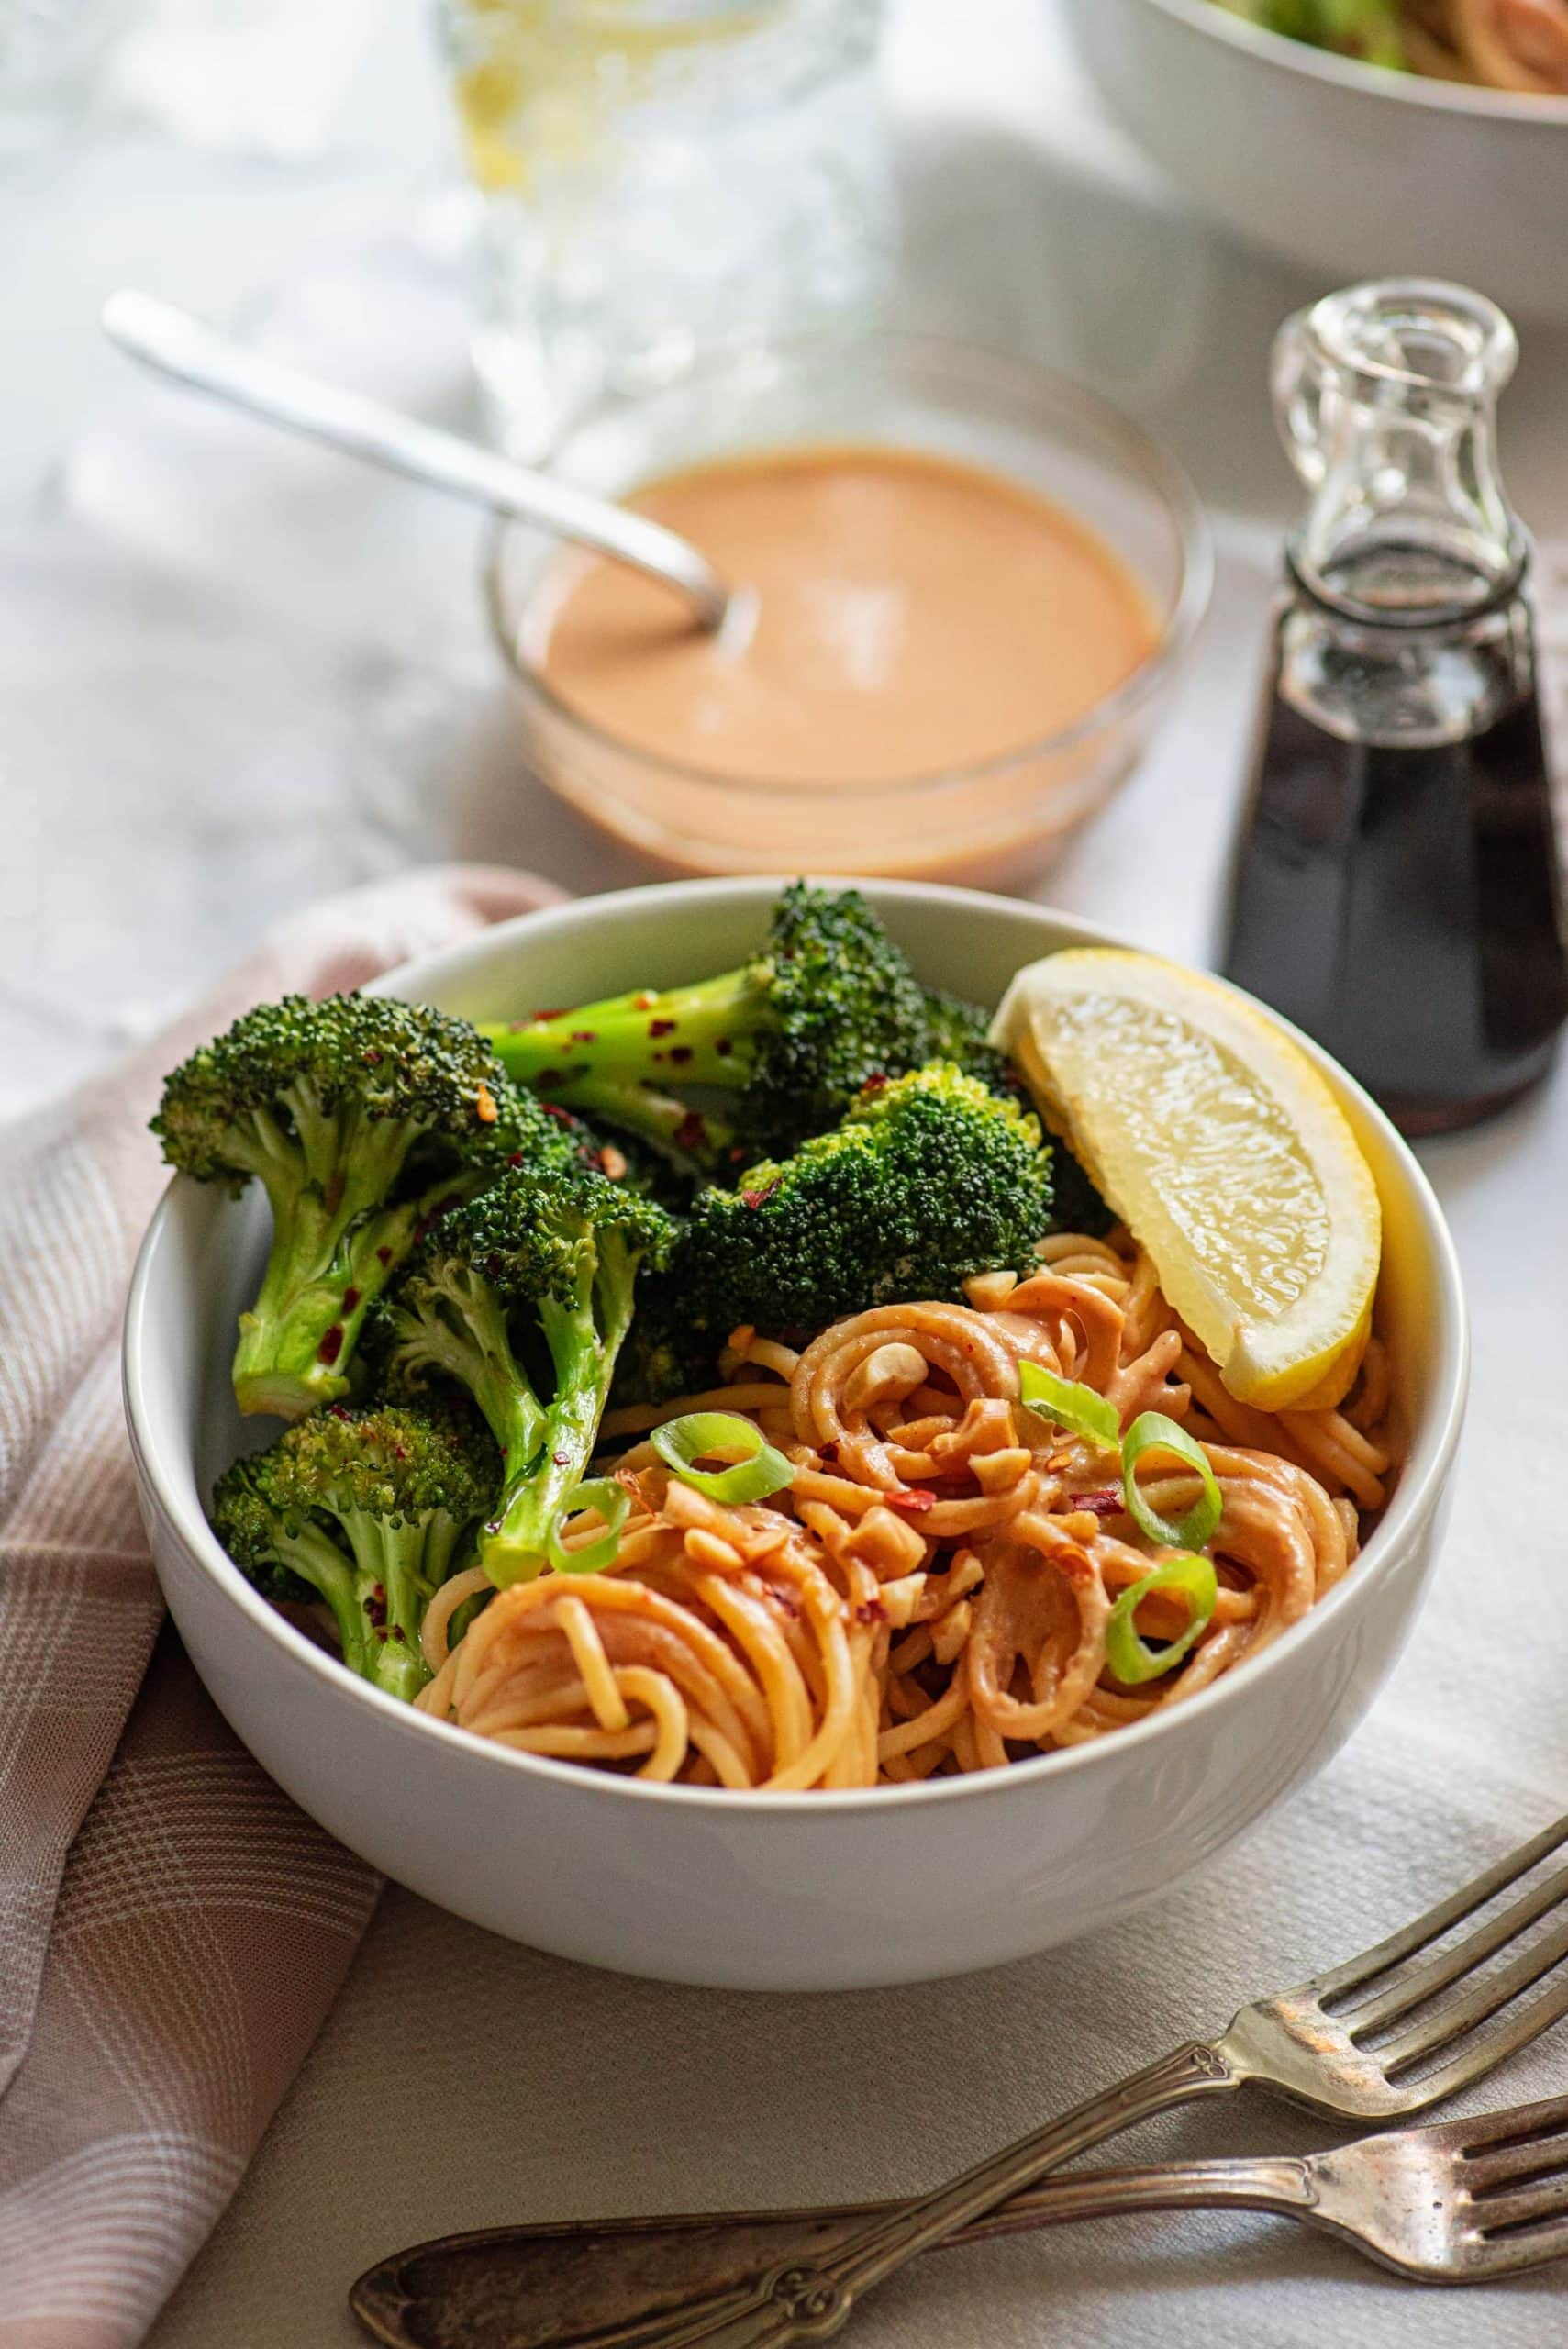 Roasted Broccoli with Peanu Noodles 6109 Web 2 scaled - Roasted Broccoli with Peanut Noodles